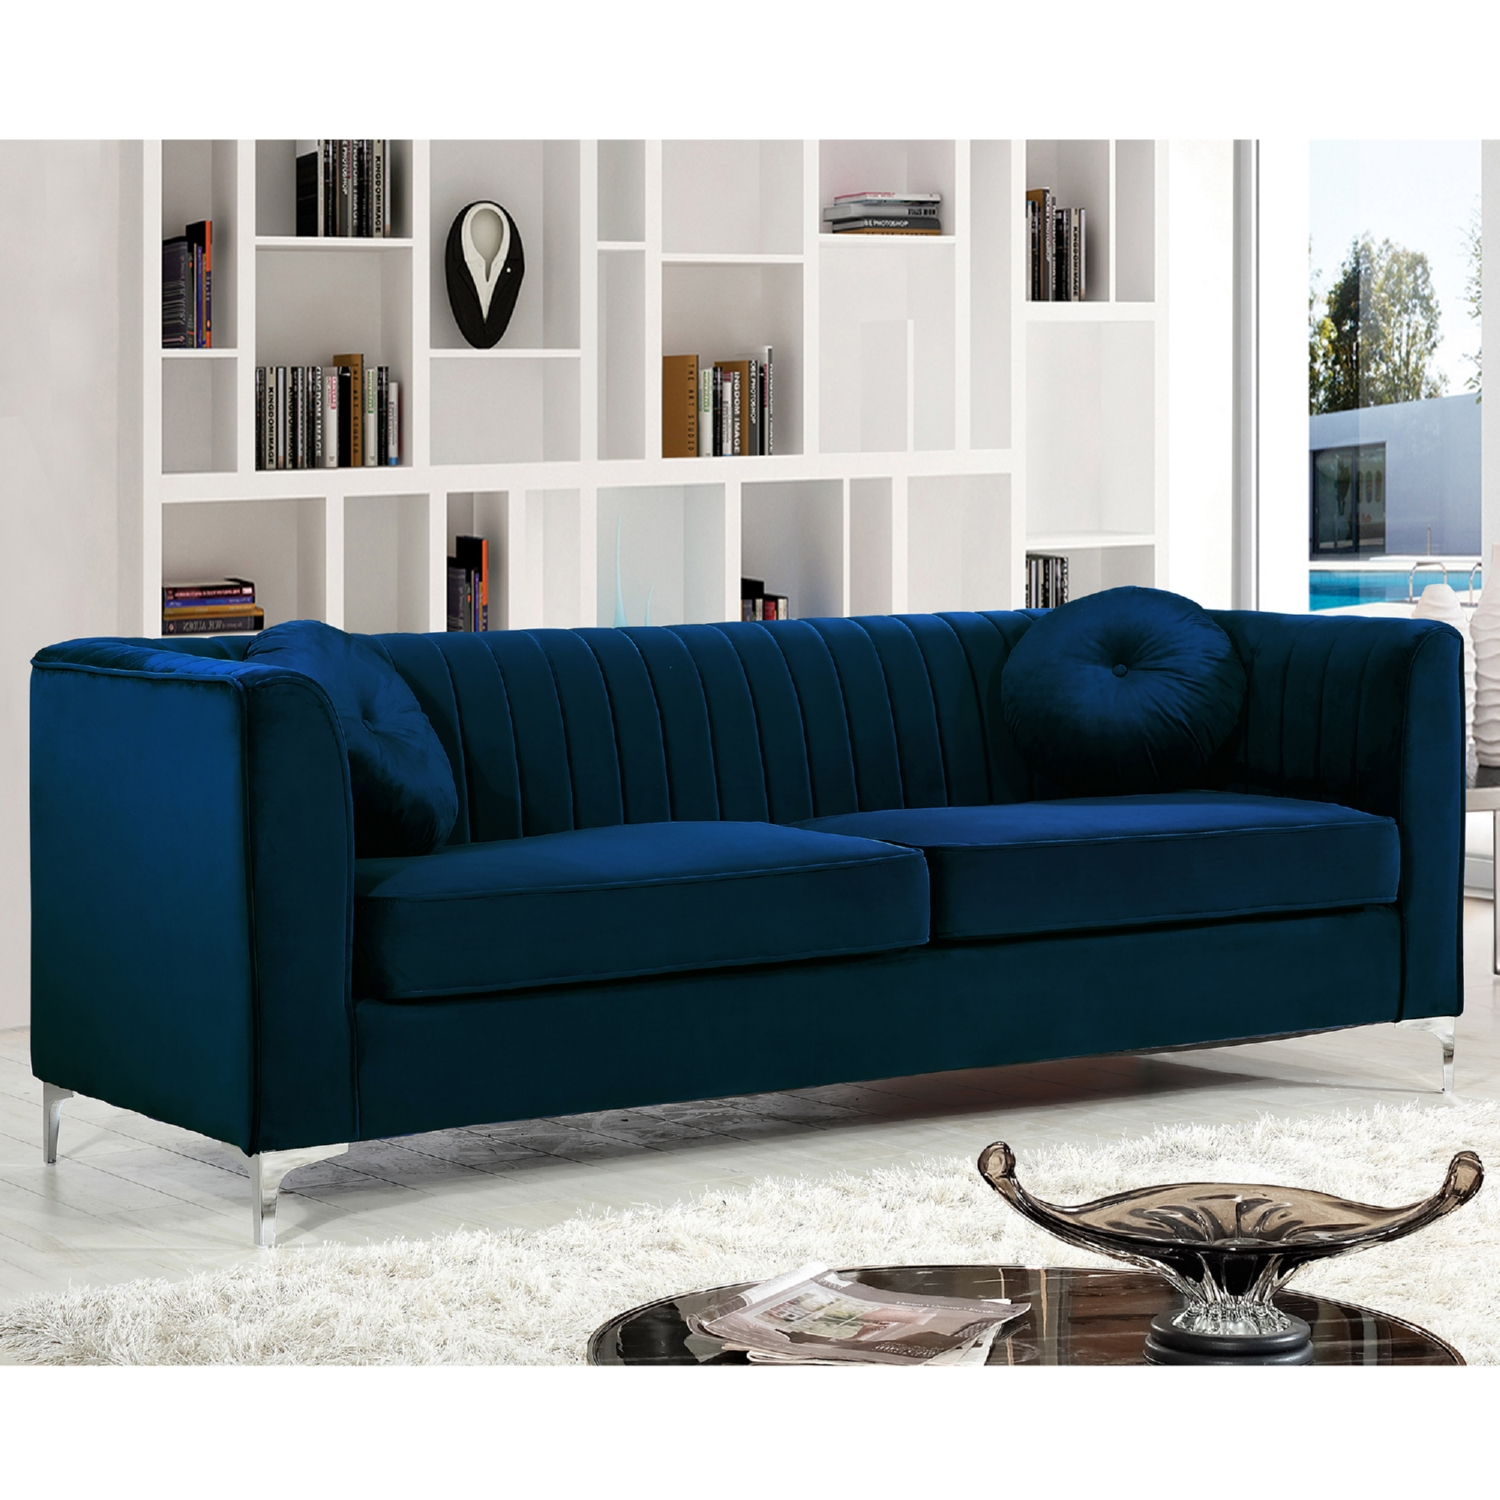 navy leather chesterfield sofa lazy boy reclining with fold down table meridian furniture 612navy s isabelle velvet on